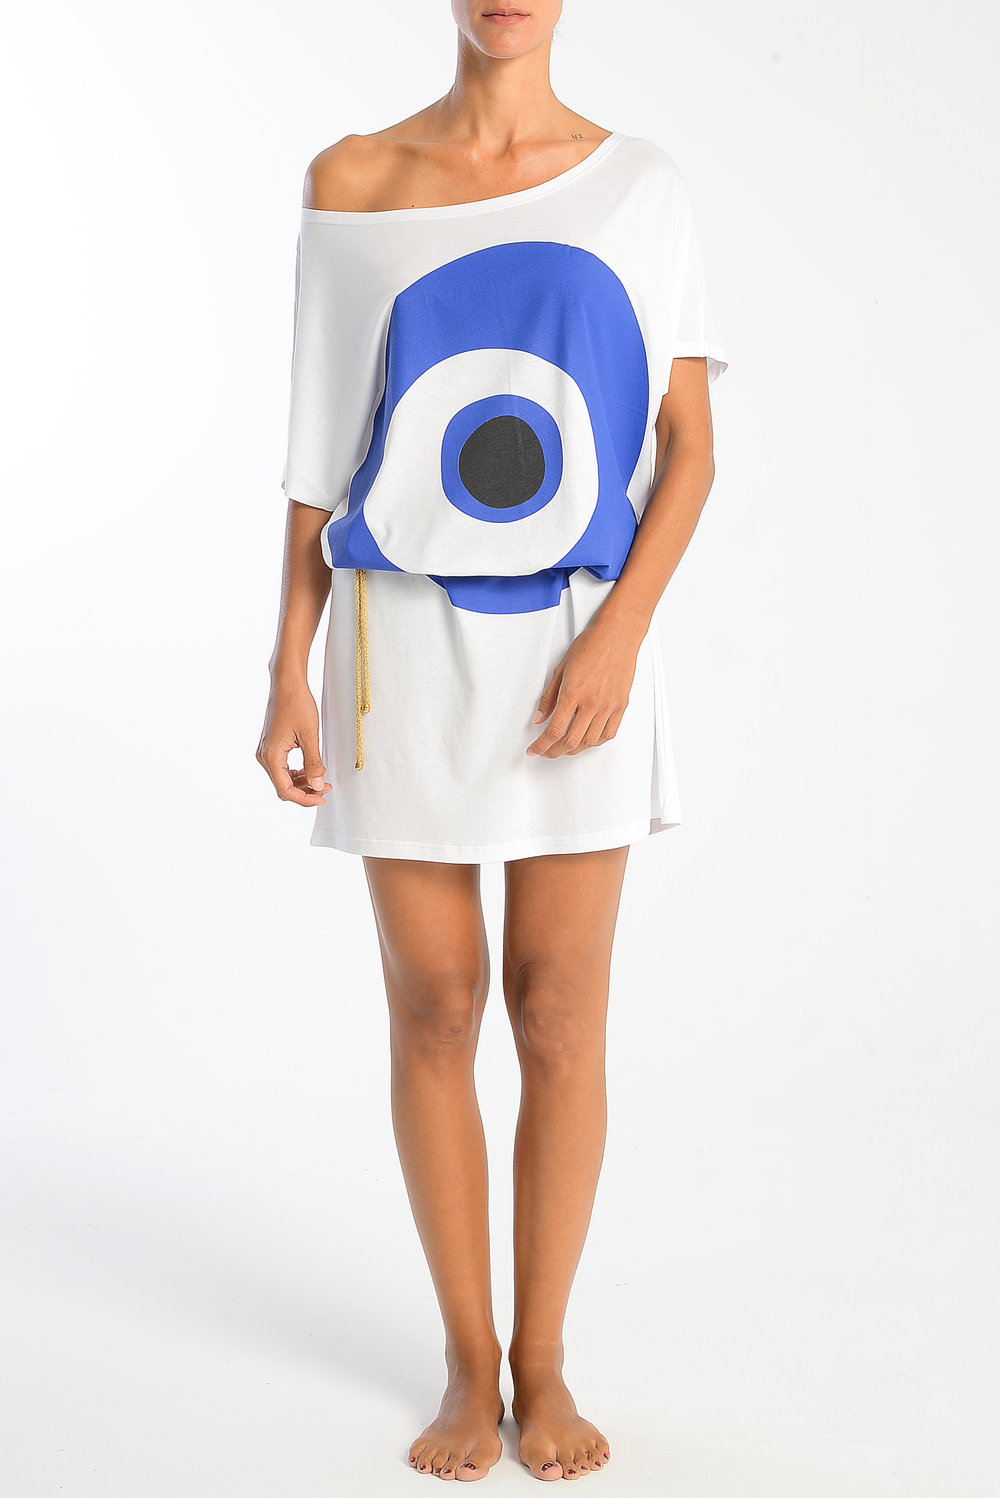 evil-eye-blue-black-on-white-tshirt-dress-white-cotton-with-belt.jpg